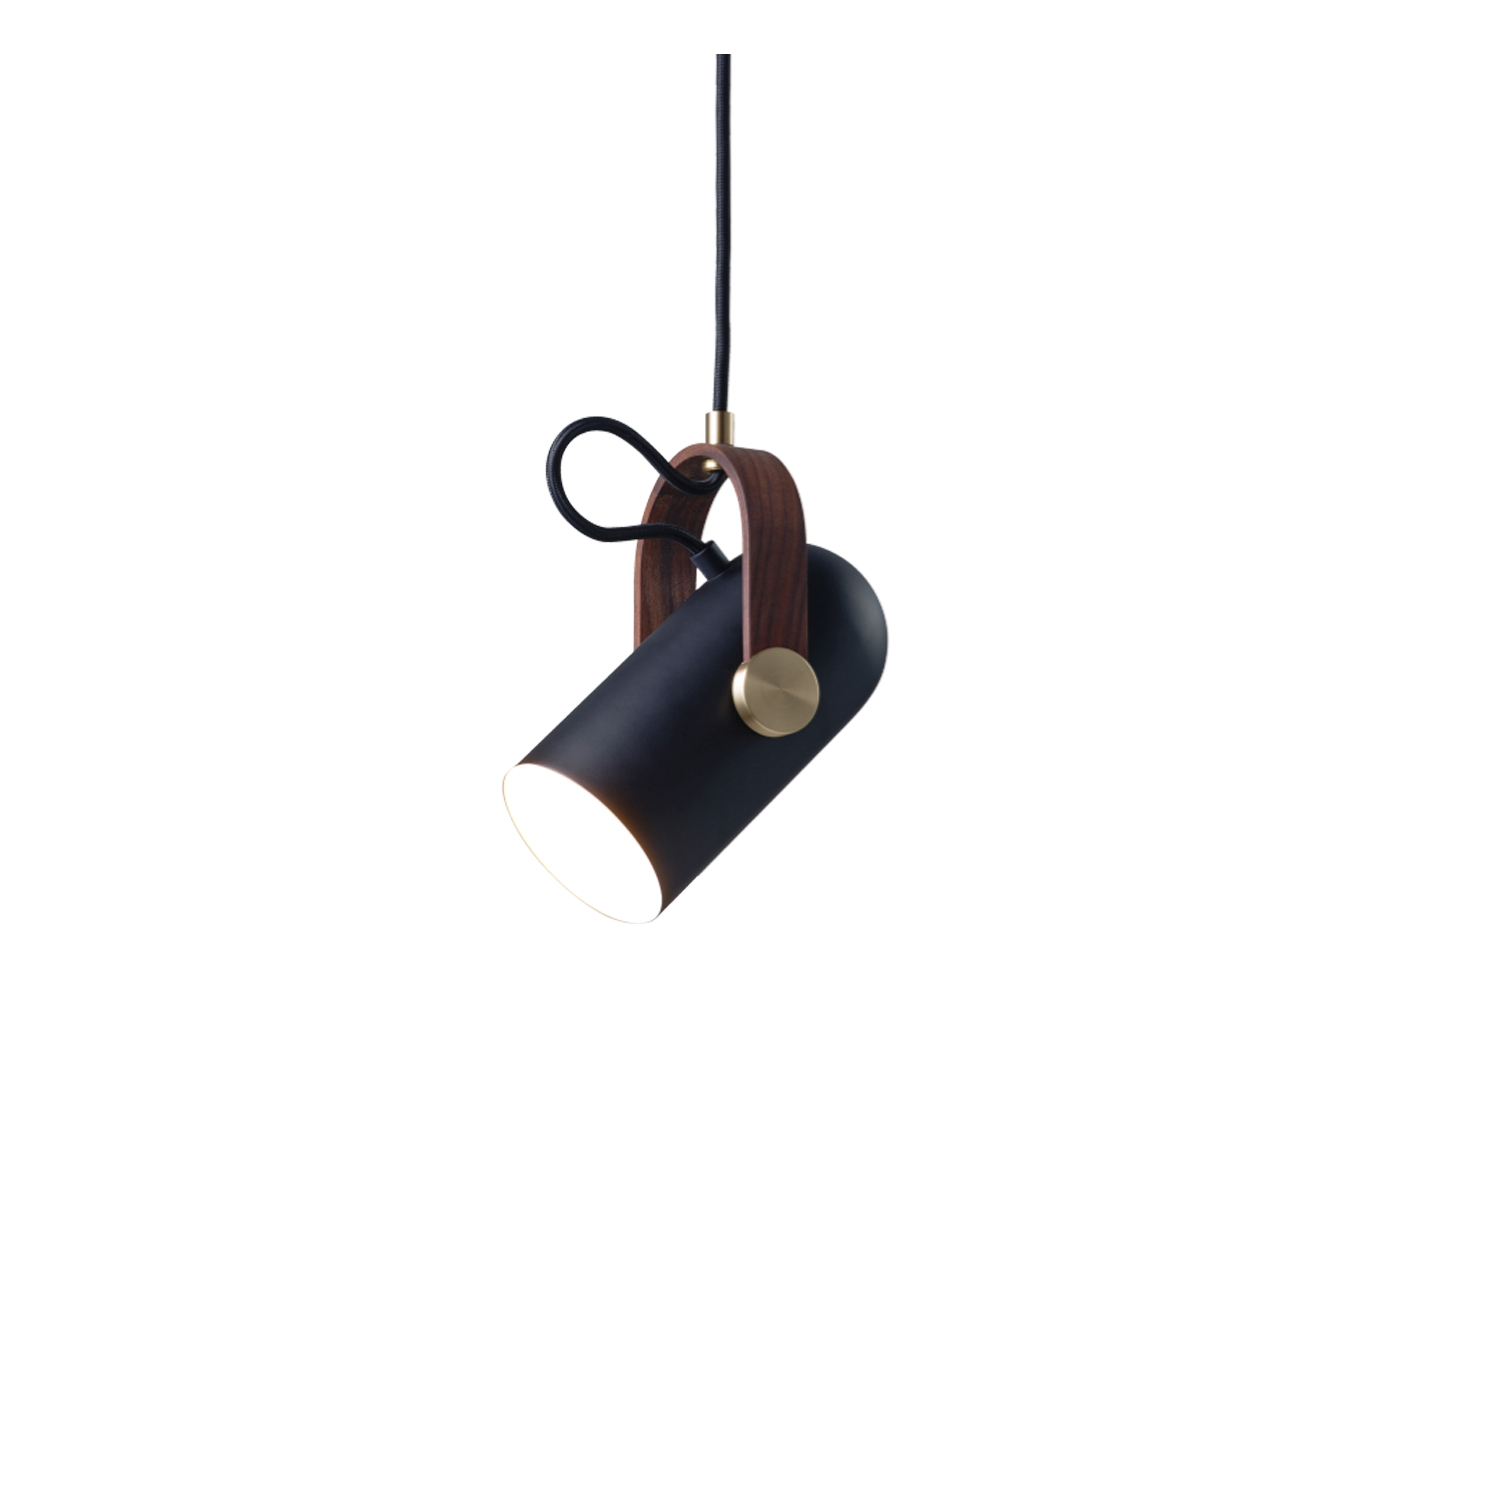 Carronade Spot Pendant - The CARRONADE spot pendant is the perfect spotlight. Ideal as a single working light and general light source for business and home use. These small pendants are perfectly sized to hang as a beautiful cluster, in a row or at various angles to highlight the rotating head feature.  Carronade spot pendant comes in a black or sand painted aluminium finish with brass or aluminium metal discs and American walnut or oak details.  This pendant is available in two different sizes.   It is not difficult to see how designer Markus Johansson drew inspiration from 17th-century ship cannons as he created the CARRONADE lamp series. The idea of a small table lamp, with a distinctive but playful shape of a small cannon, was quite a challenge. Realizing gunpowder and cannonballs references, by way of modern lighting technology then synchronized with 21st-century contemporary Nordic lighting designs, was no simple task but very much a 'Eureka' moment.   Matter of Stuff